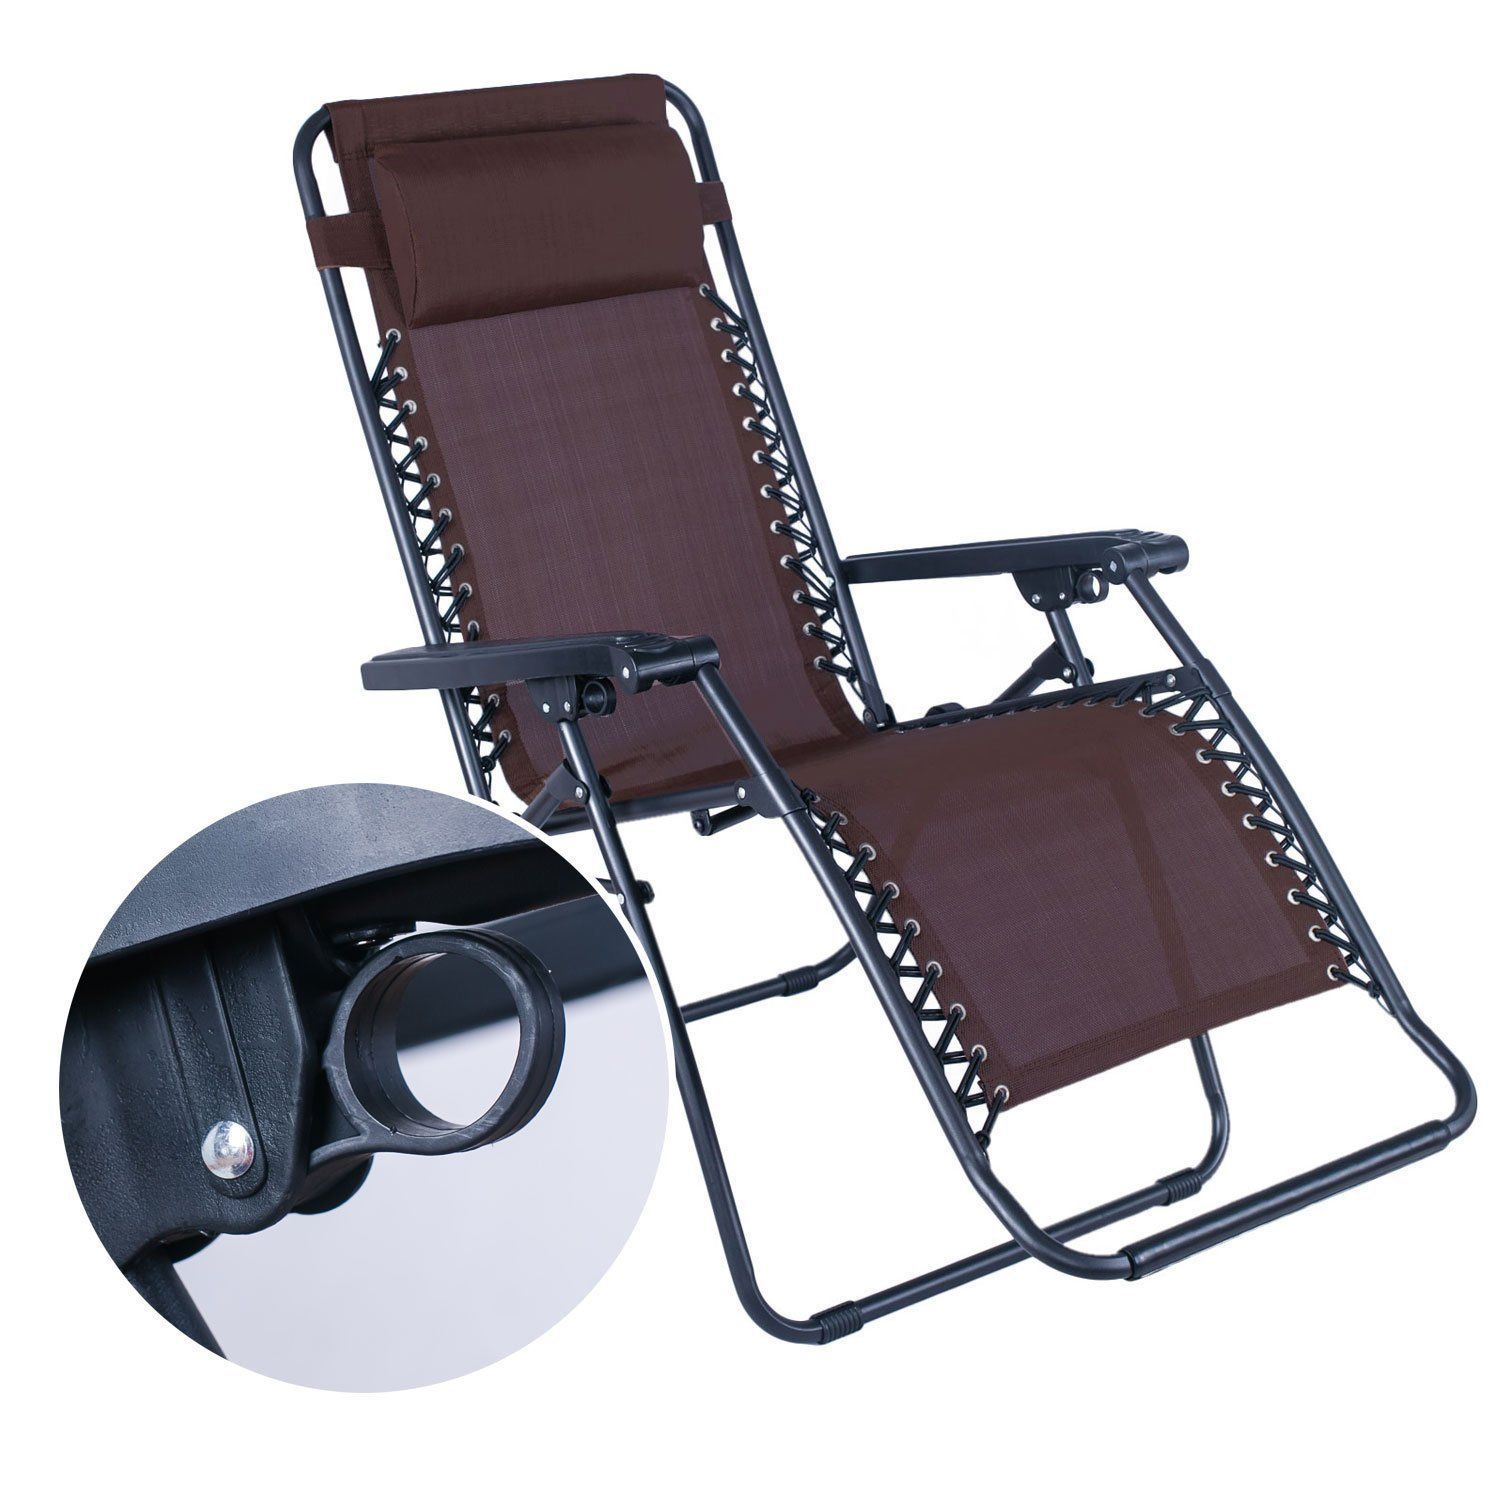 Portable Recliner Chair Adeco Portable Recliner Chair With Adjustable Headrest